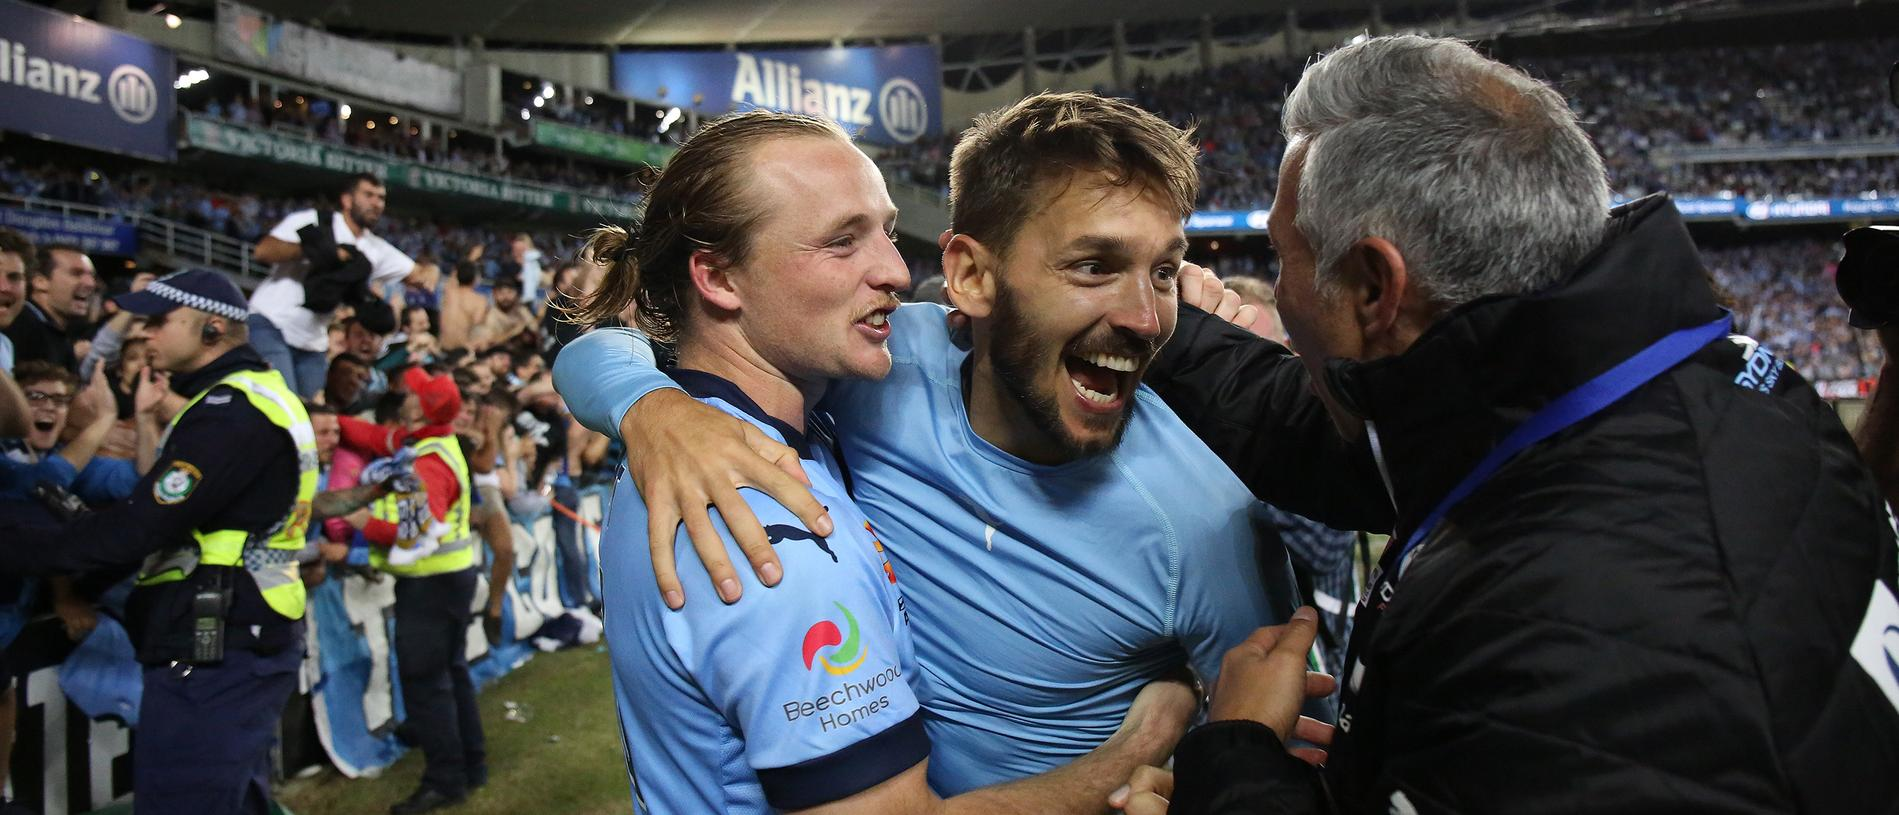 Sydney's Rhyan Grant and Milos Ninkovic (centre) celebrate after winning the A-League Grand Final between Sydney FC and Melbourne Victory at Allianz Stadium in Sydney, Sunday, May 7, 2017. (AAP Image/David Moir) NO ARCHIVING, EDITORIAL USE ONLY